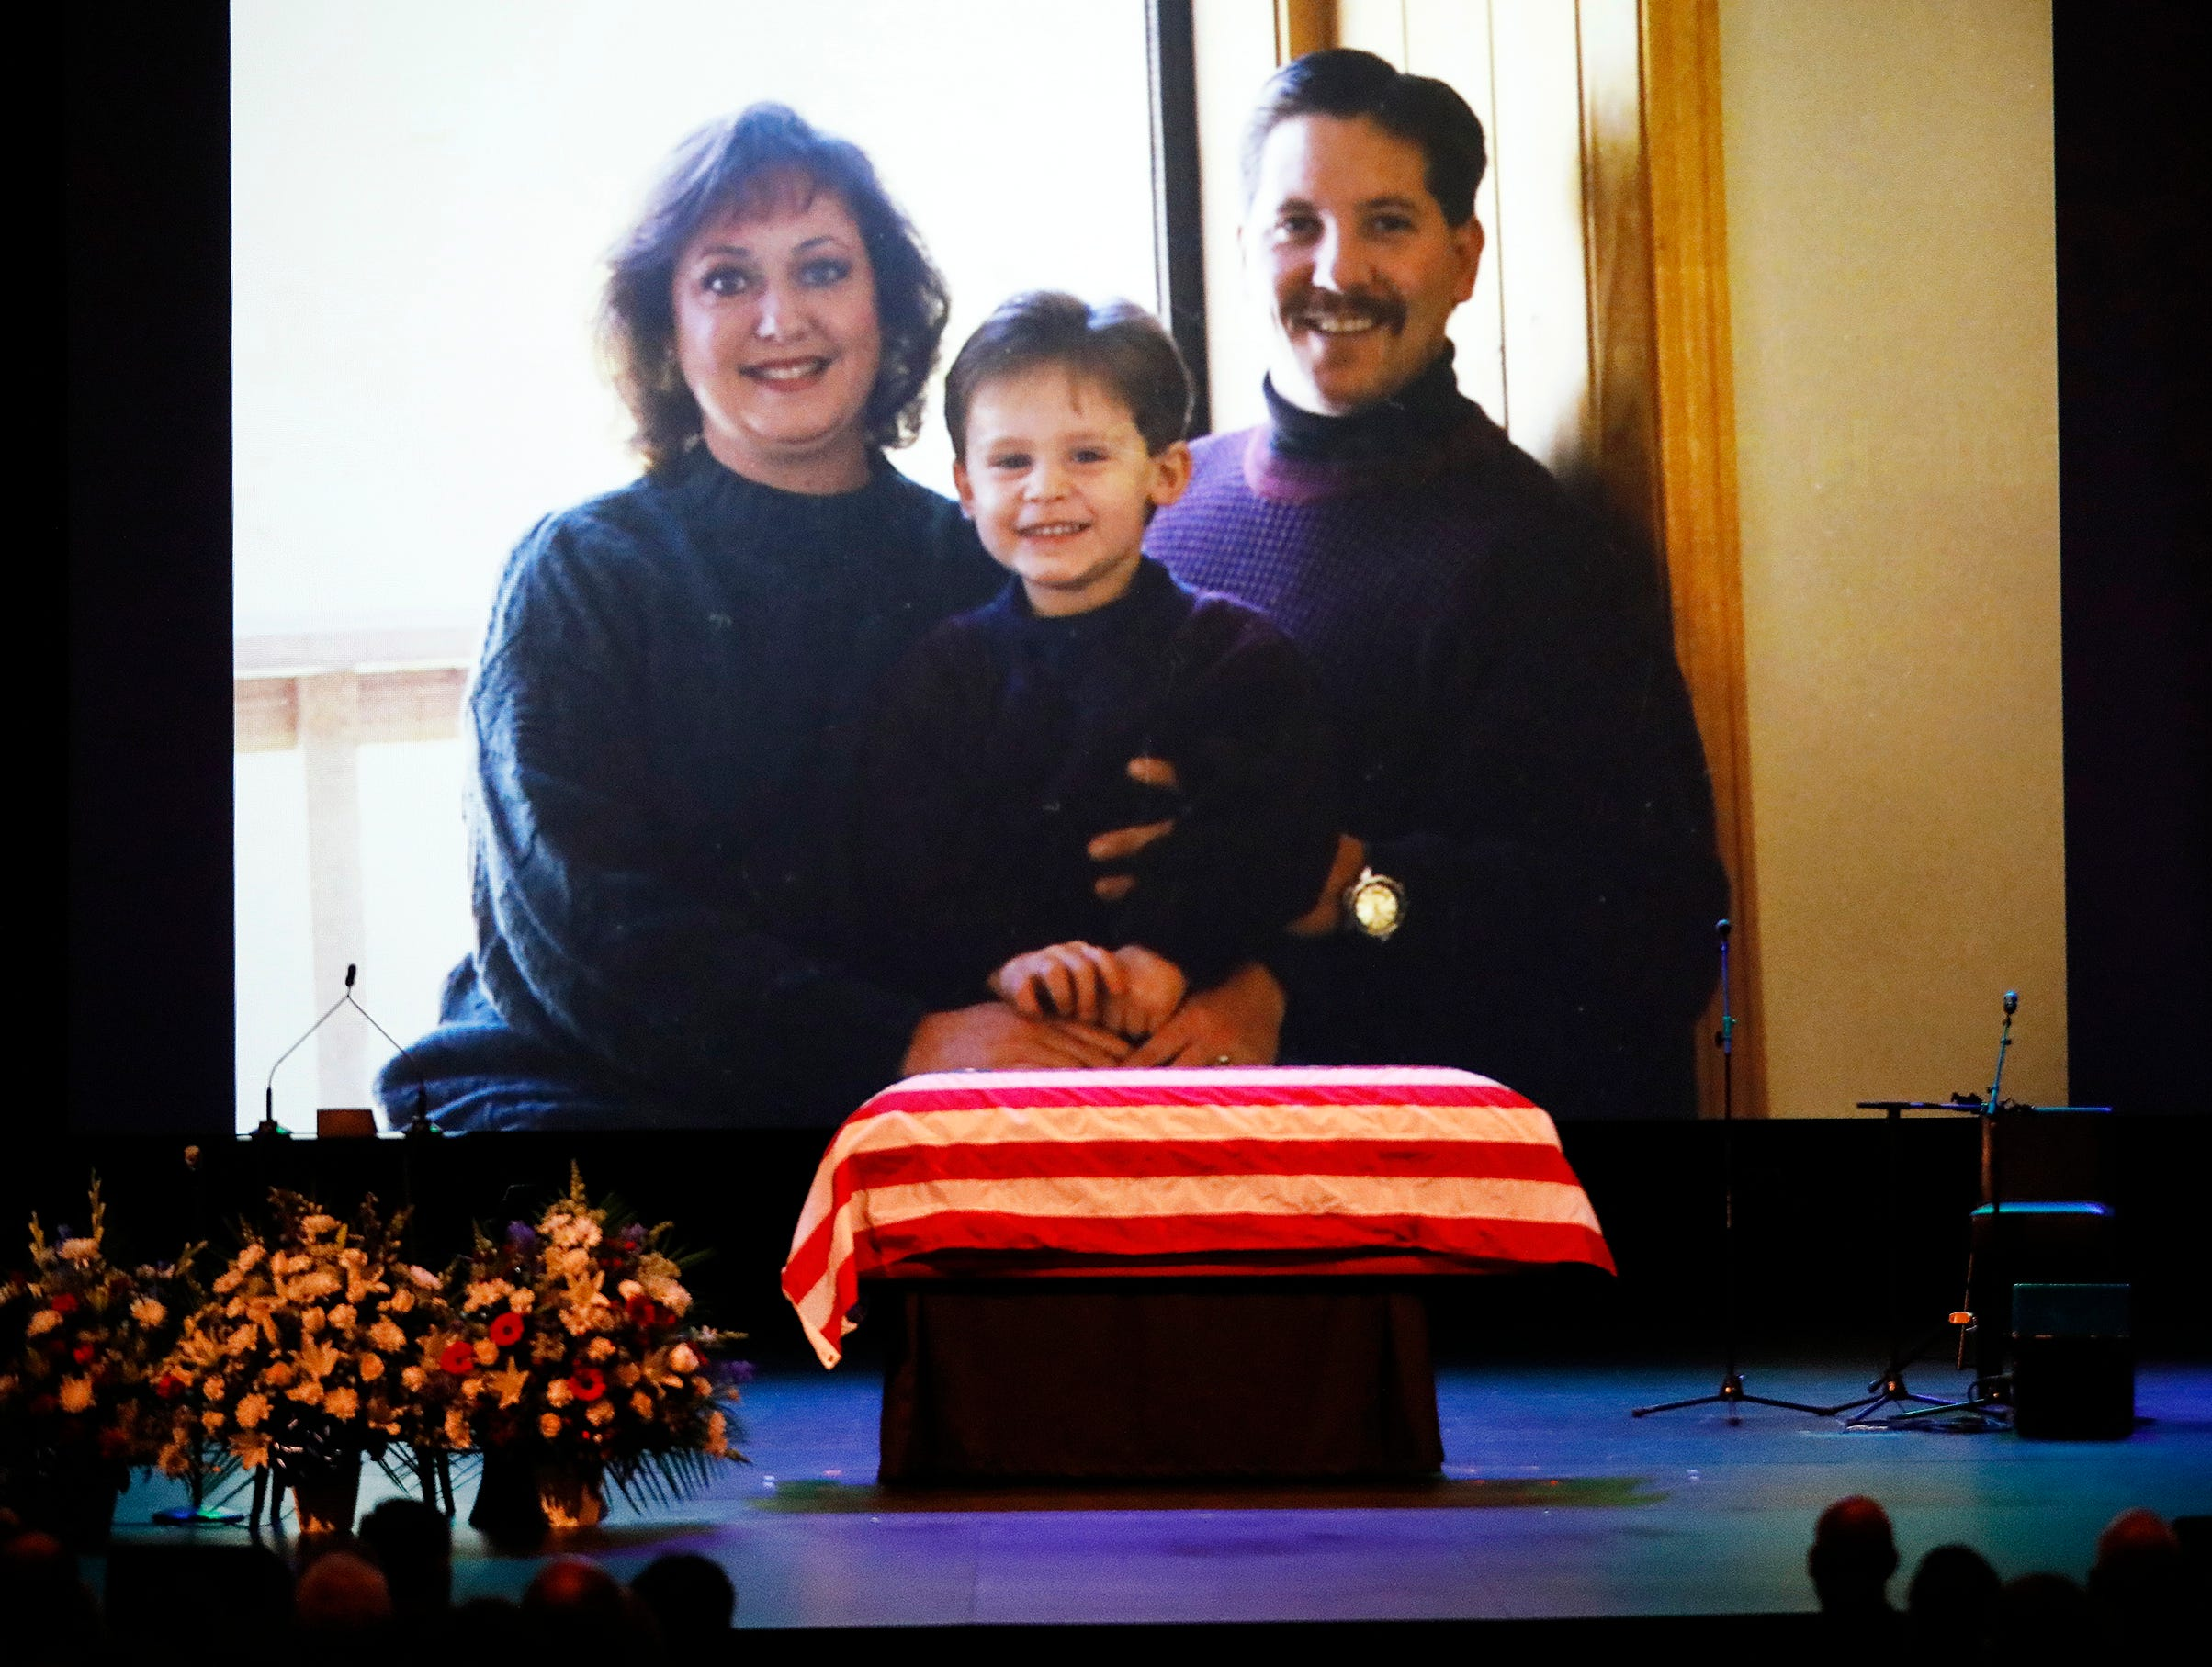 A old family photo of Ventura County Sheriff's Office Sgt. Ron Helus with his wife Karen and son Jordan is shown during a video montage at Calvary Community Church for his memorial service Thursday.